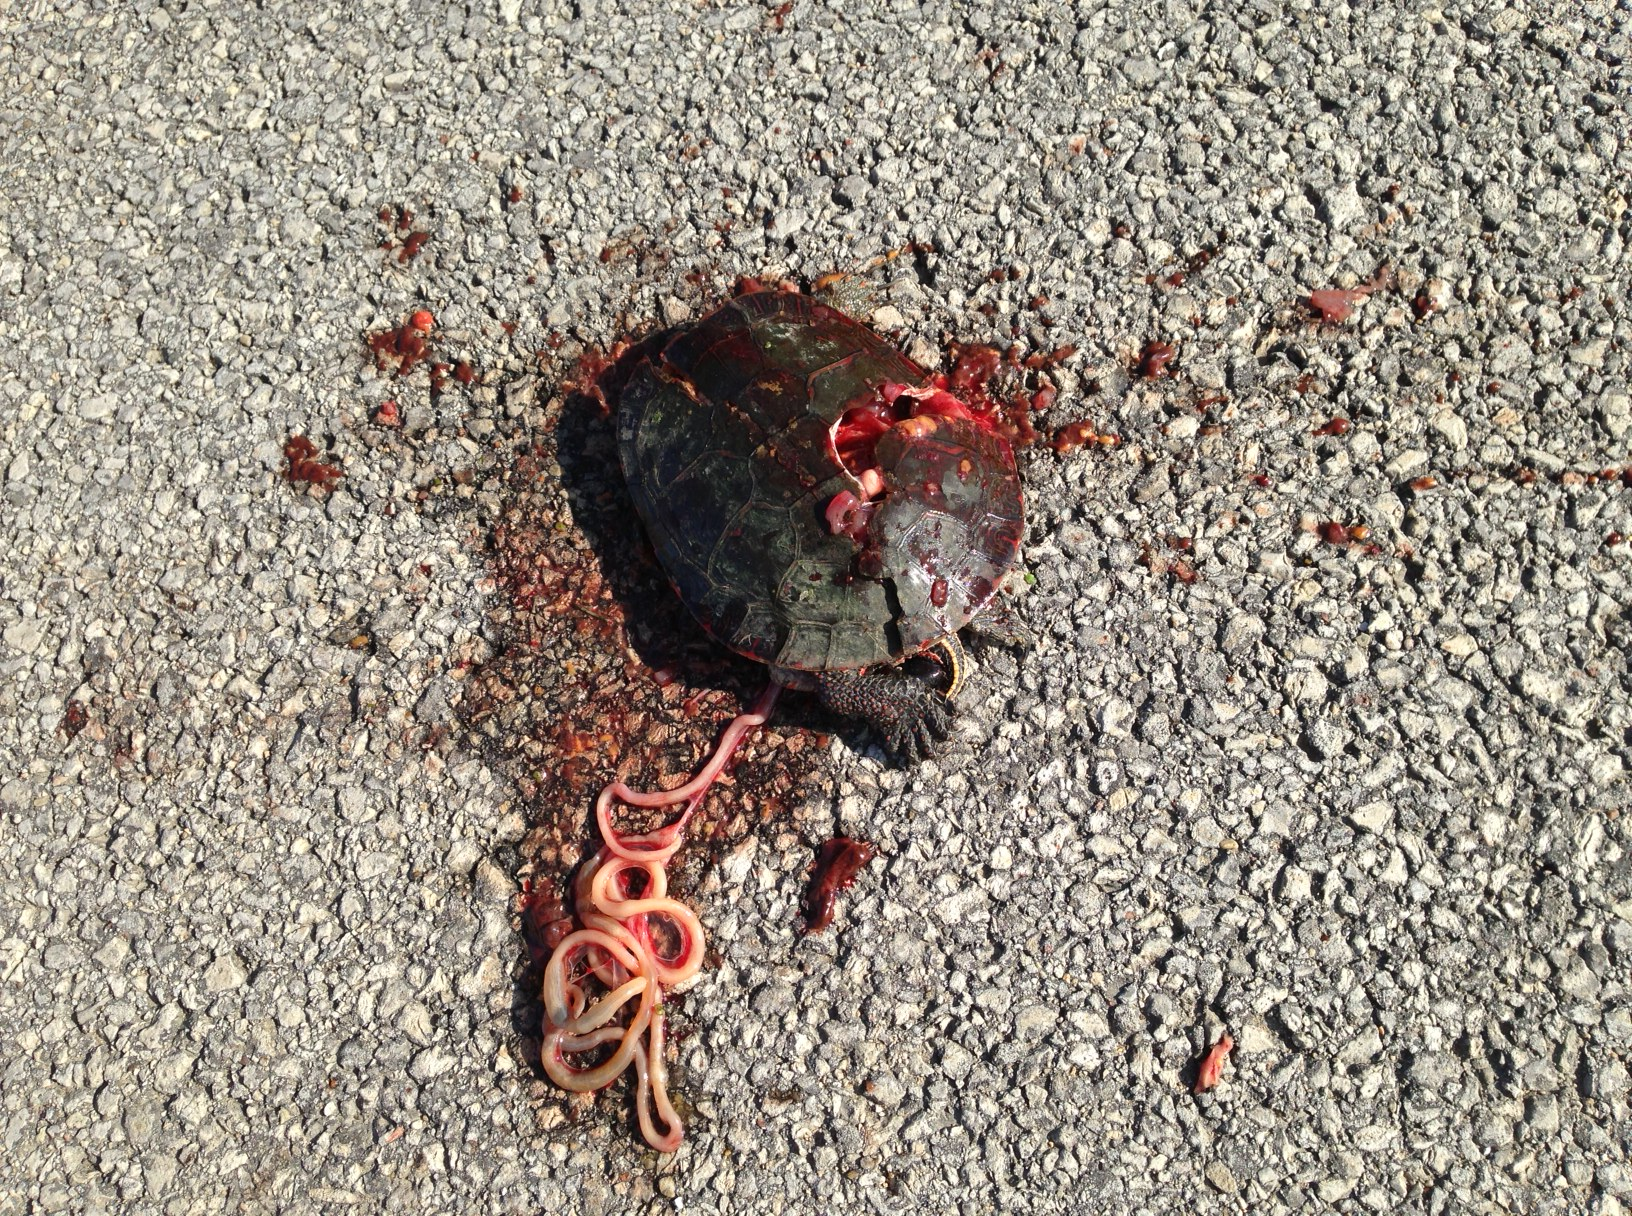 What does a smashed turtle on the road really mean we run and ride a smashed turtle should be a wakeup call to our own manner of existence biocorpaavc Choice Image